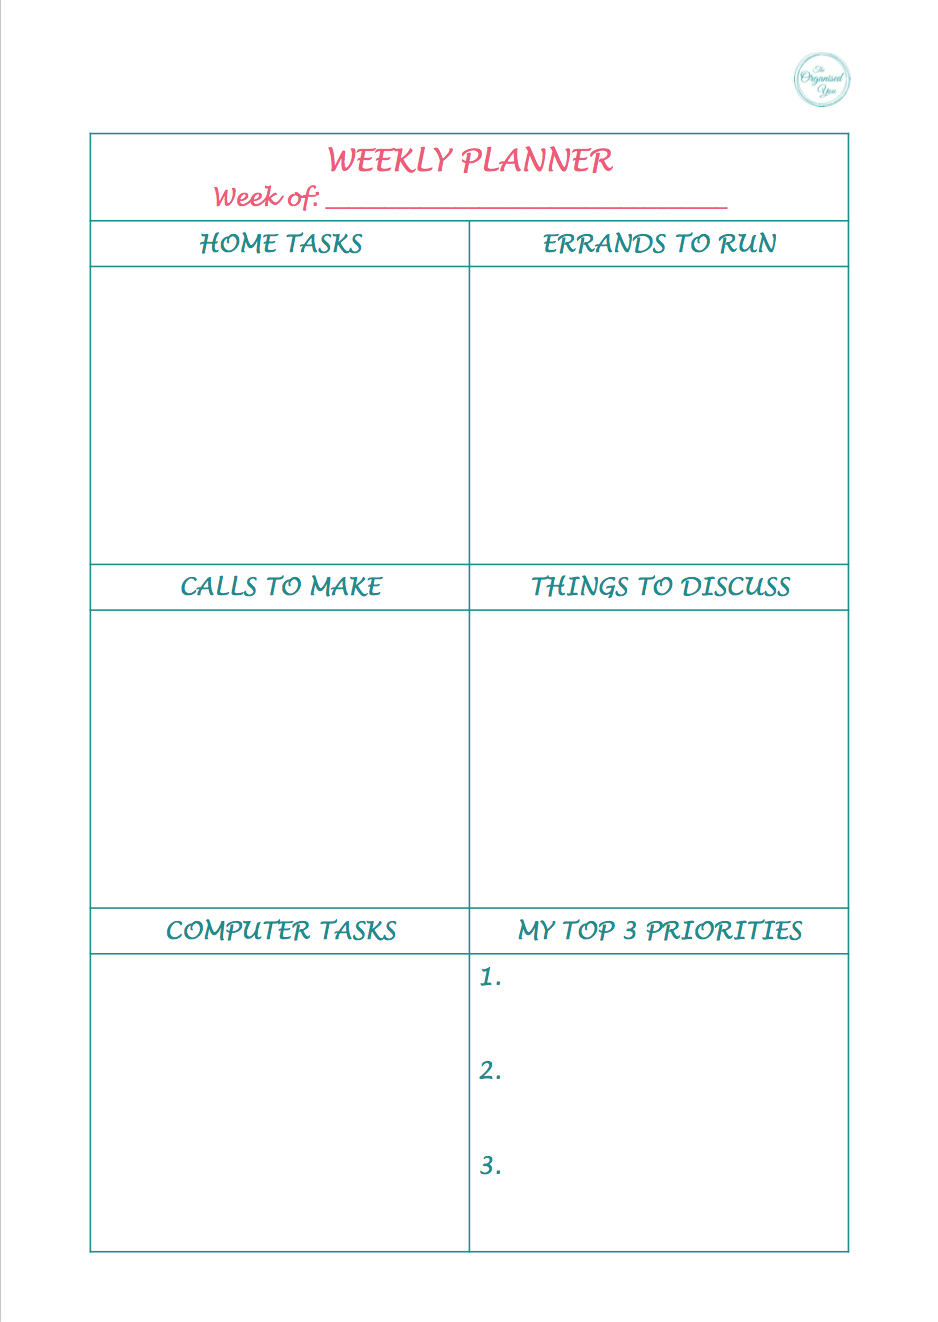 Plan your tasks in categories to be more efficient and productive with your time {The Organised You Productivity Pack}